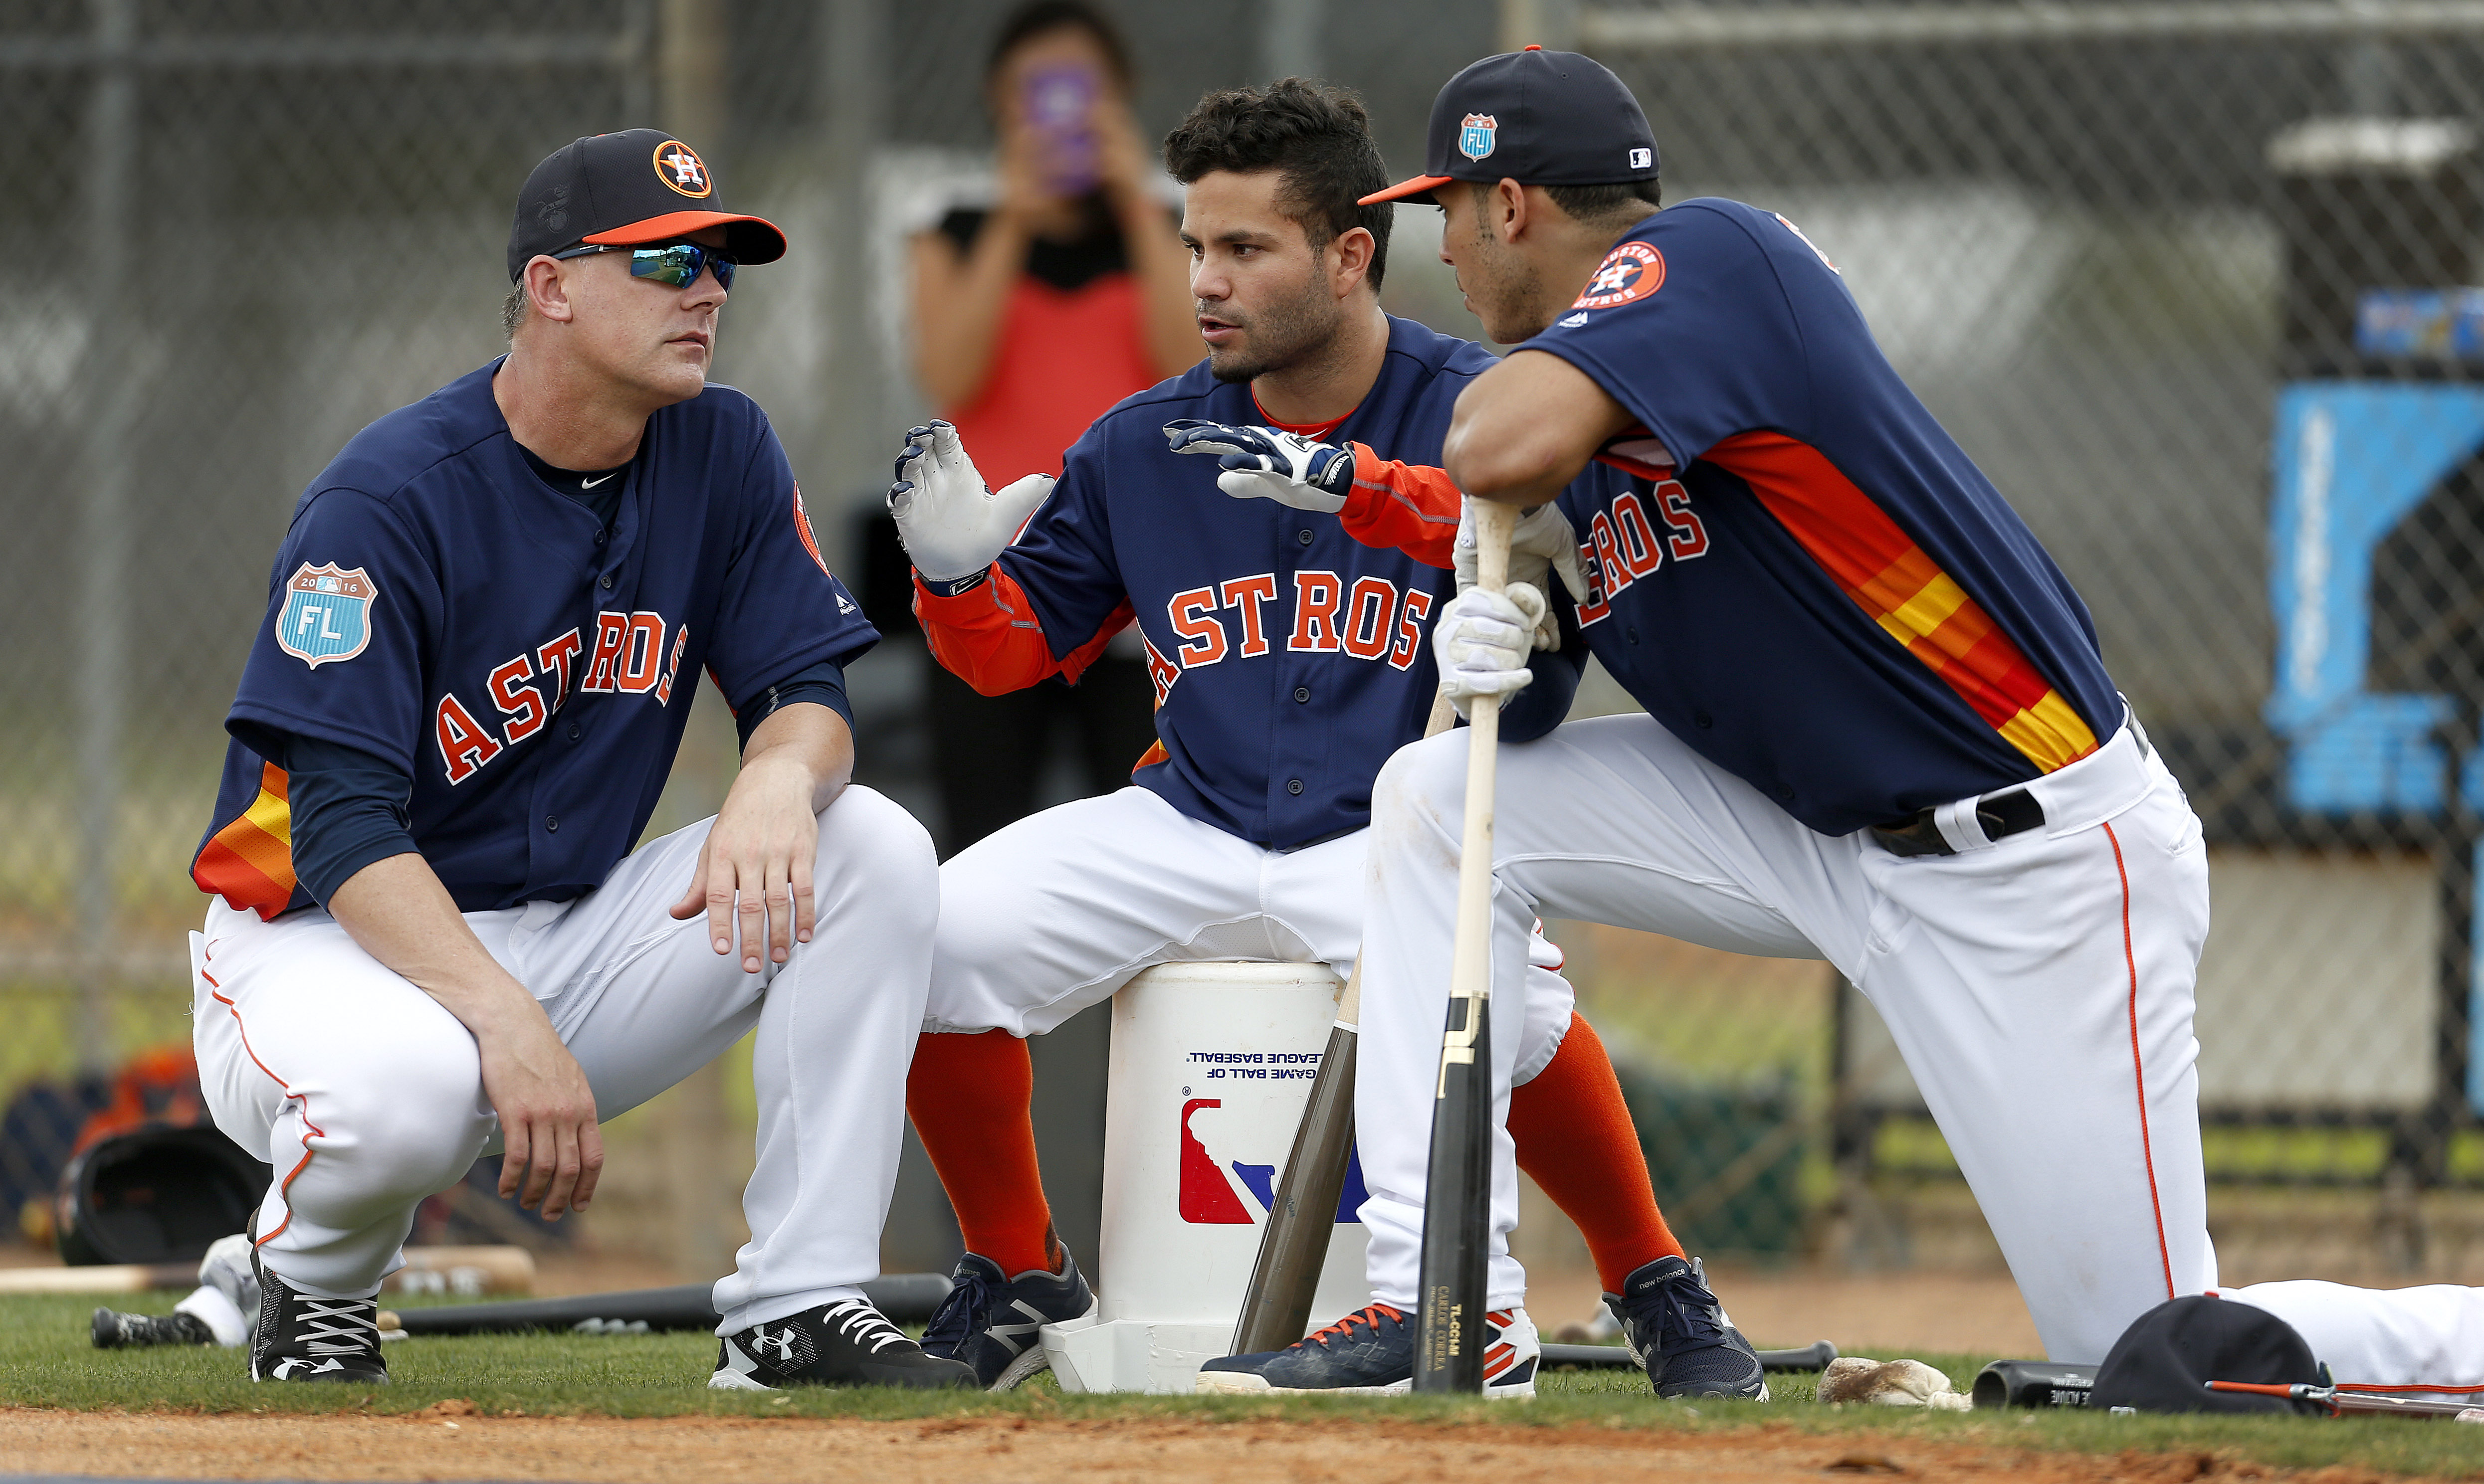 FILE - In this Feb. 23, 2016, file photo, Houston Astros manager A.J. Hinch, left, and Astros' Jose Altuve and Carlos Correa chat during a workout at the Astros spring training camp in Kissimmee, Fla. Altuve is one of only a handful of remaining Astros wh